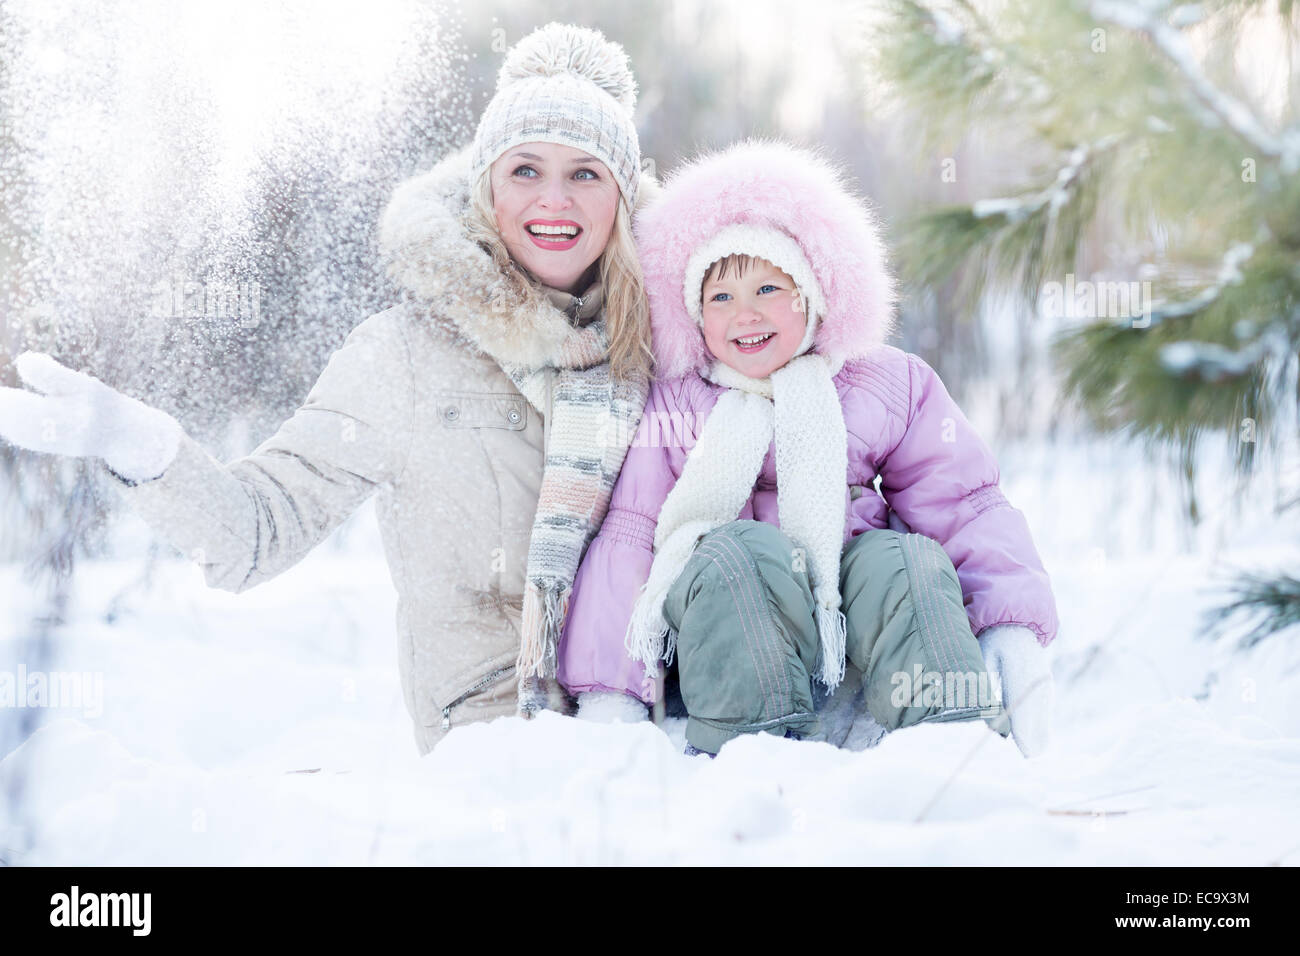 Happy family mother and daughter sitting in snow outdoor wintertime - Stock Image